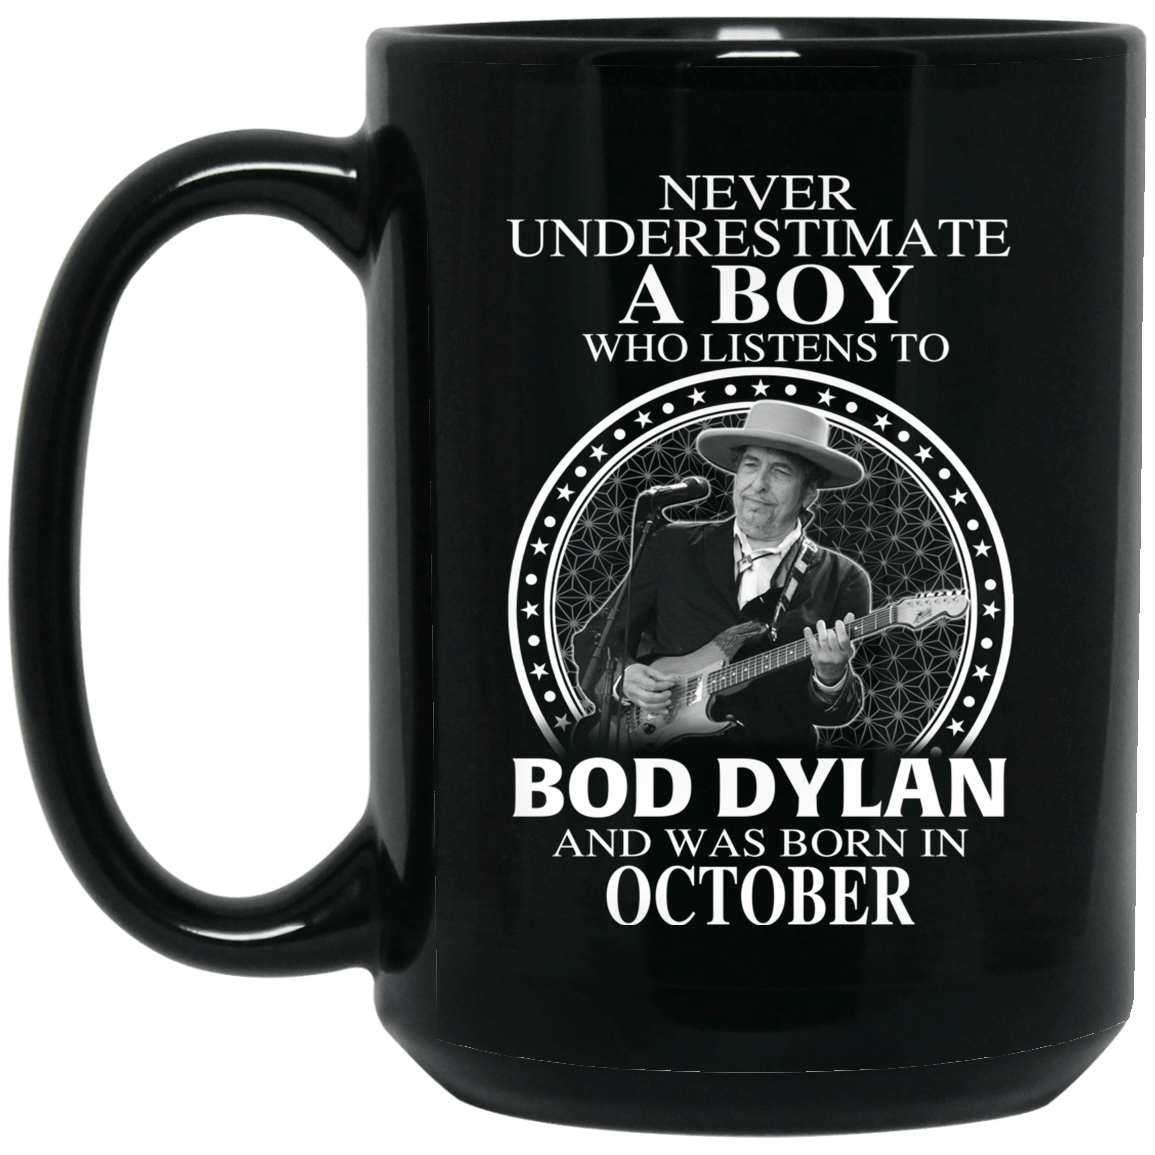 A Boy Who Listens To Bob Dylan And Was Born In October Mug 1066-10182-76154913-49311 - Tee Ript